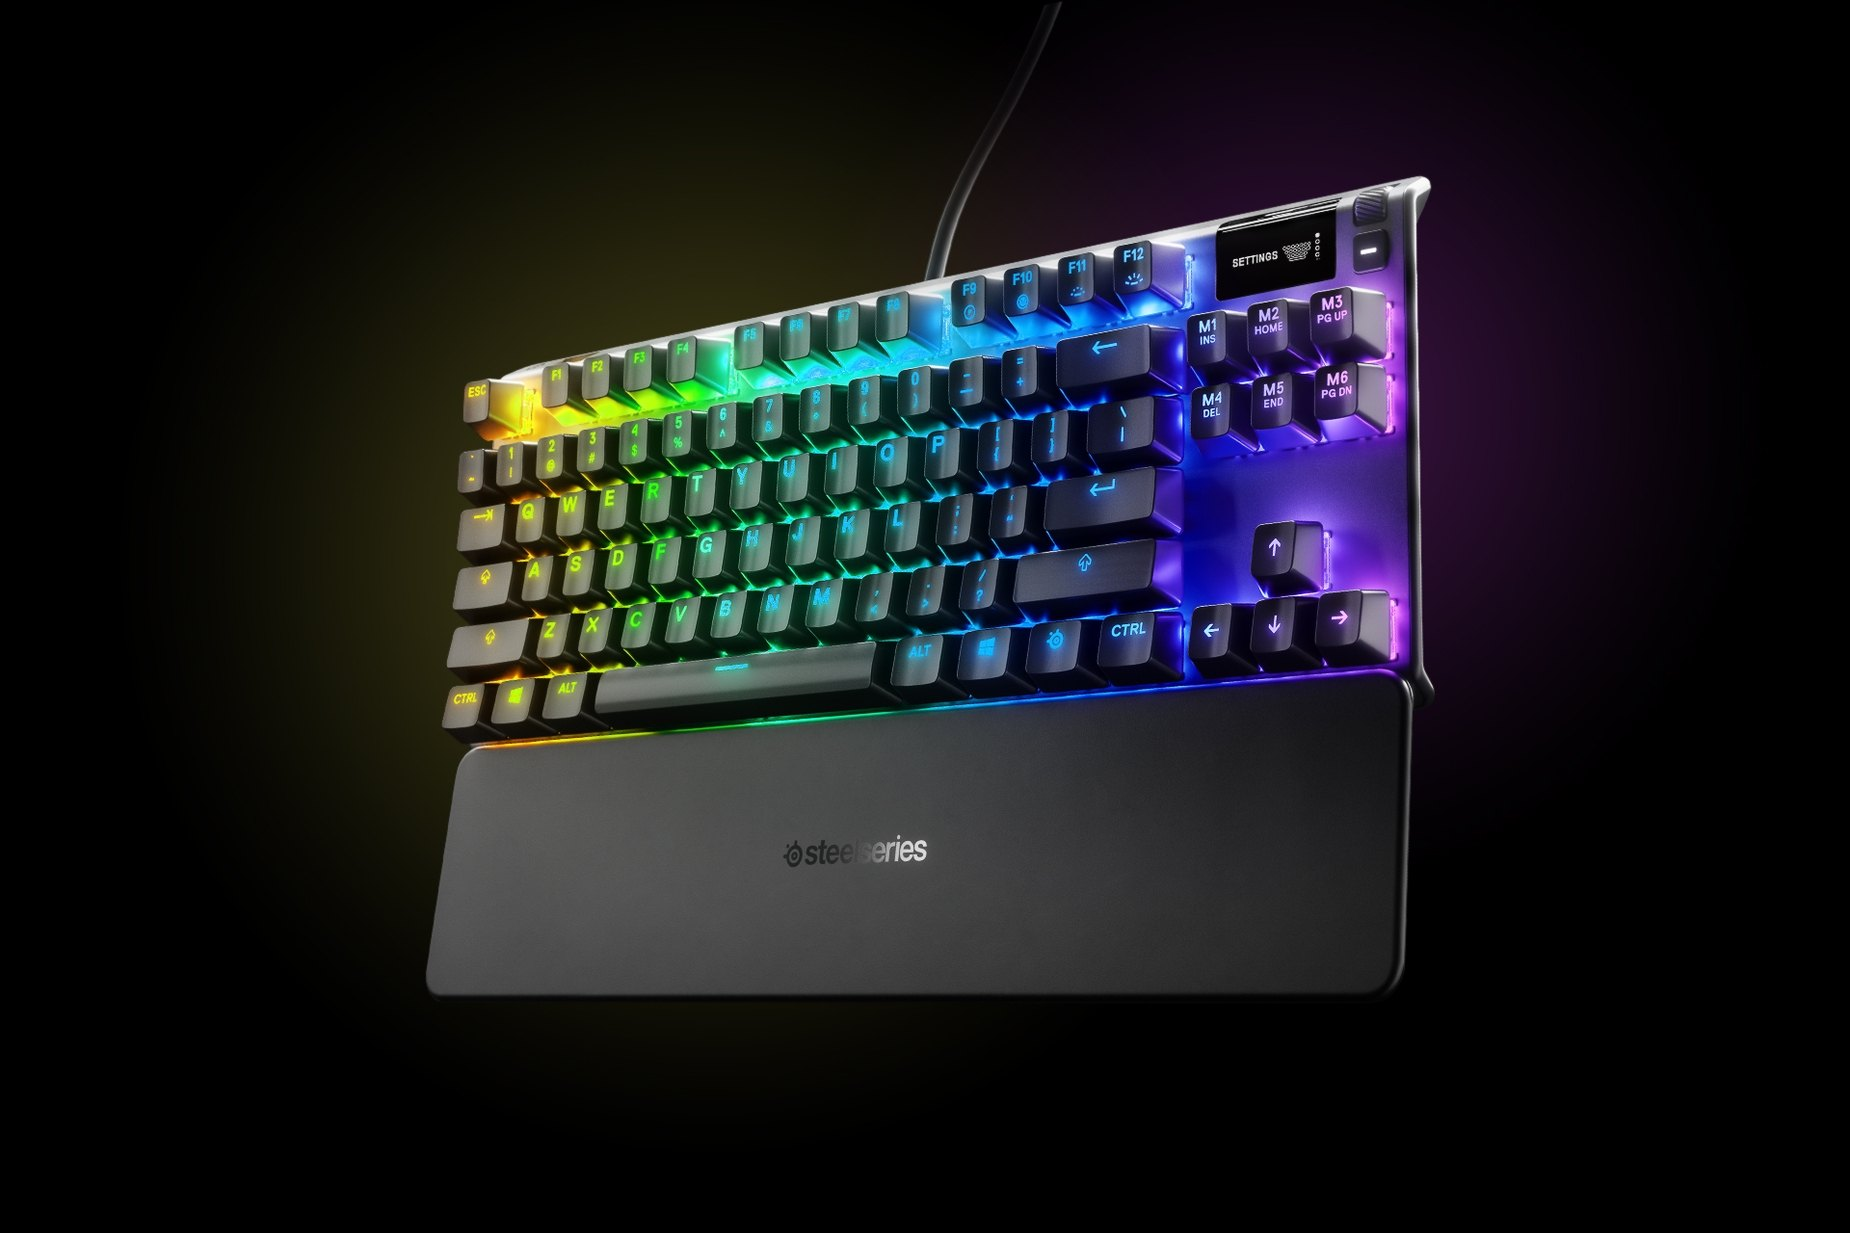 French - Apex 7 TKL (Brown Switch) gaming keyboard with the illumination lit up on dark background, also shows the OLED screen and controls used to change settings and adjust audio